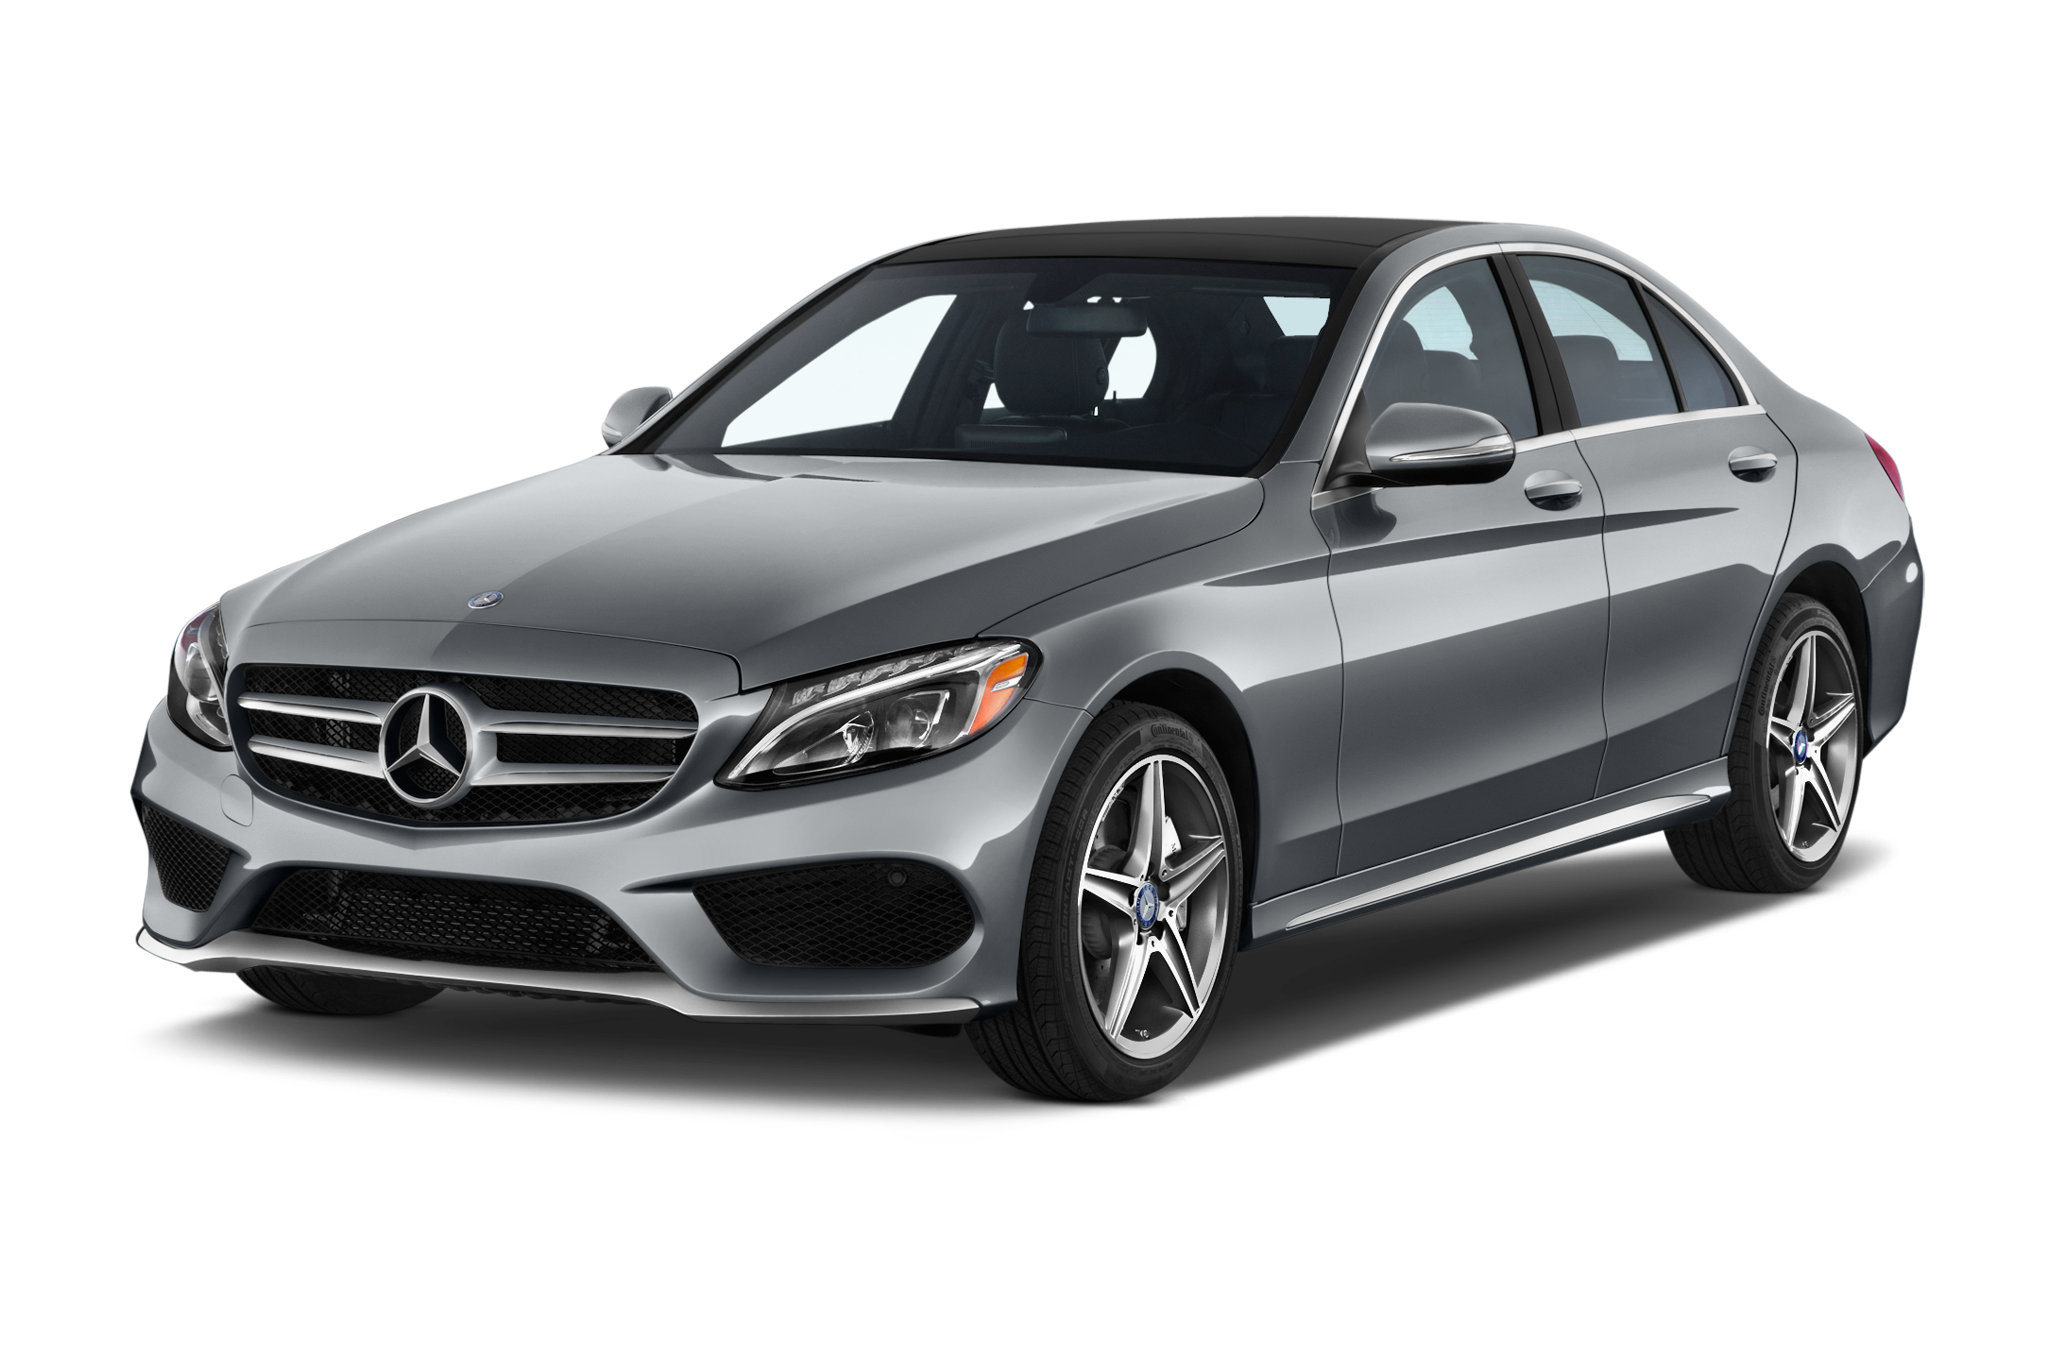 2017 mercedes benz c300 coupe debuts with fabulous two for 2017 mercedes benz c300